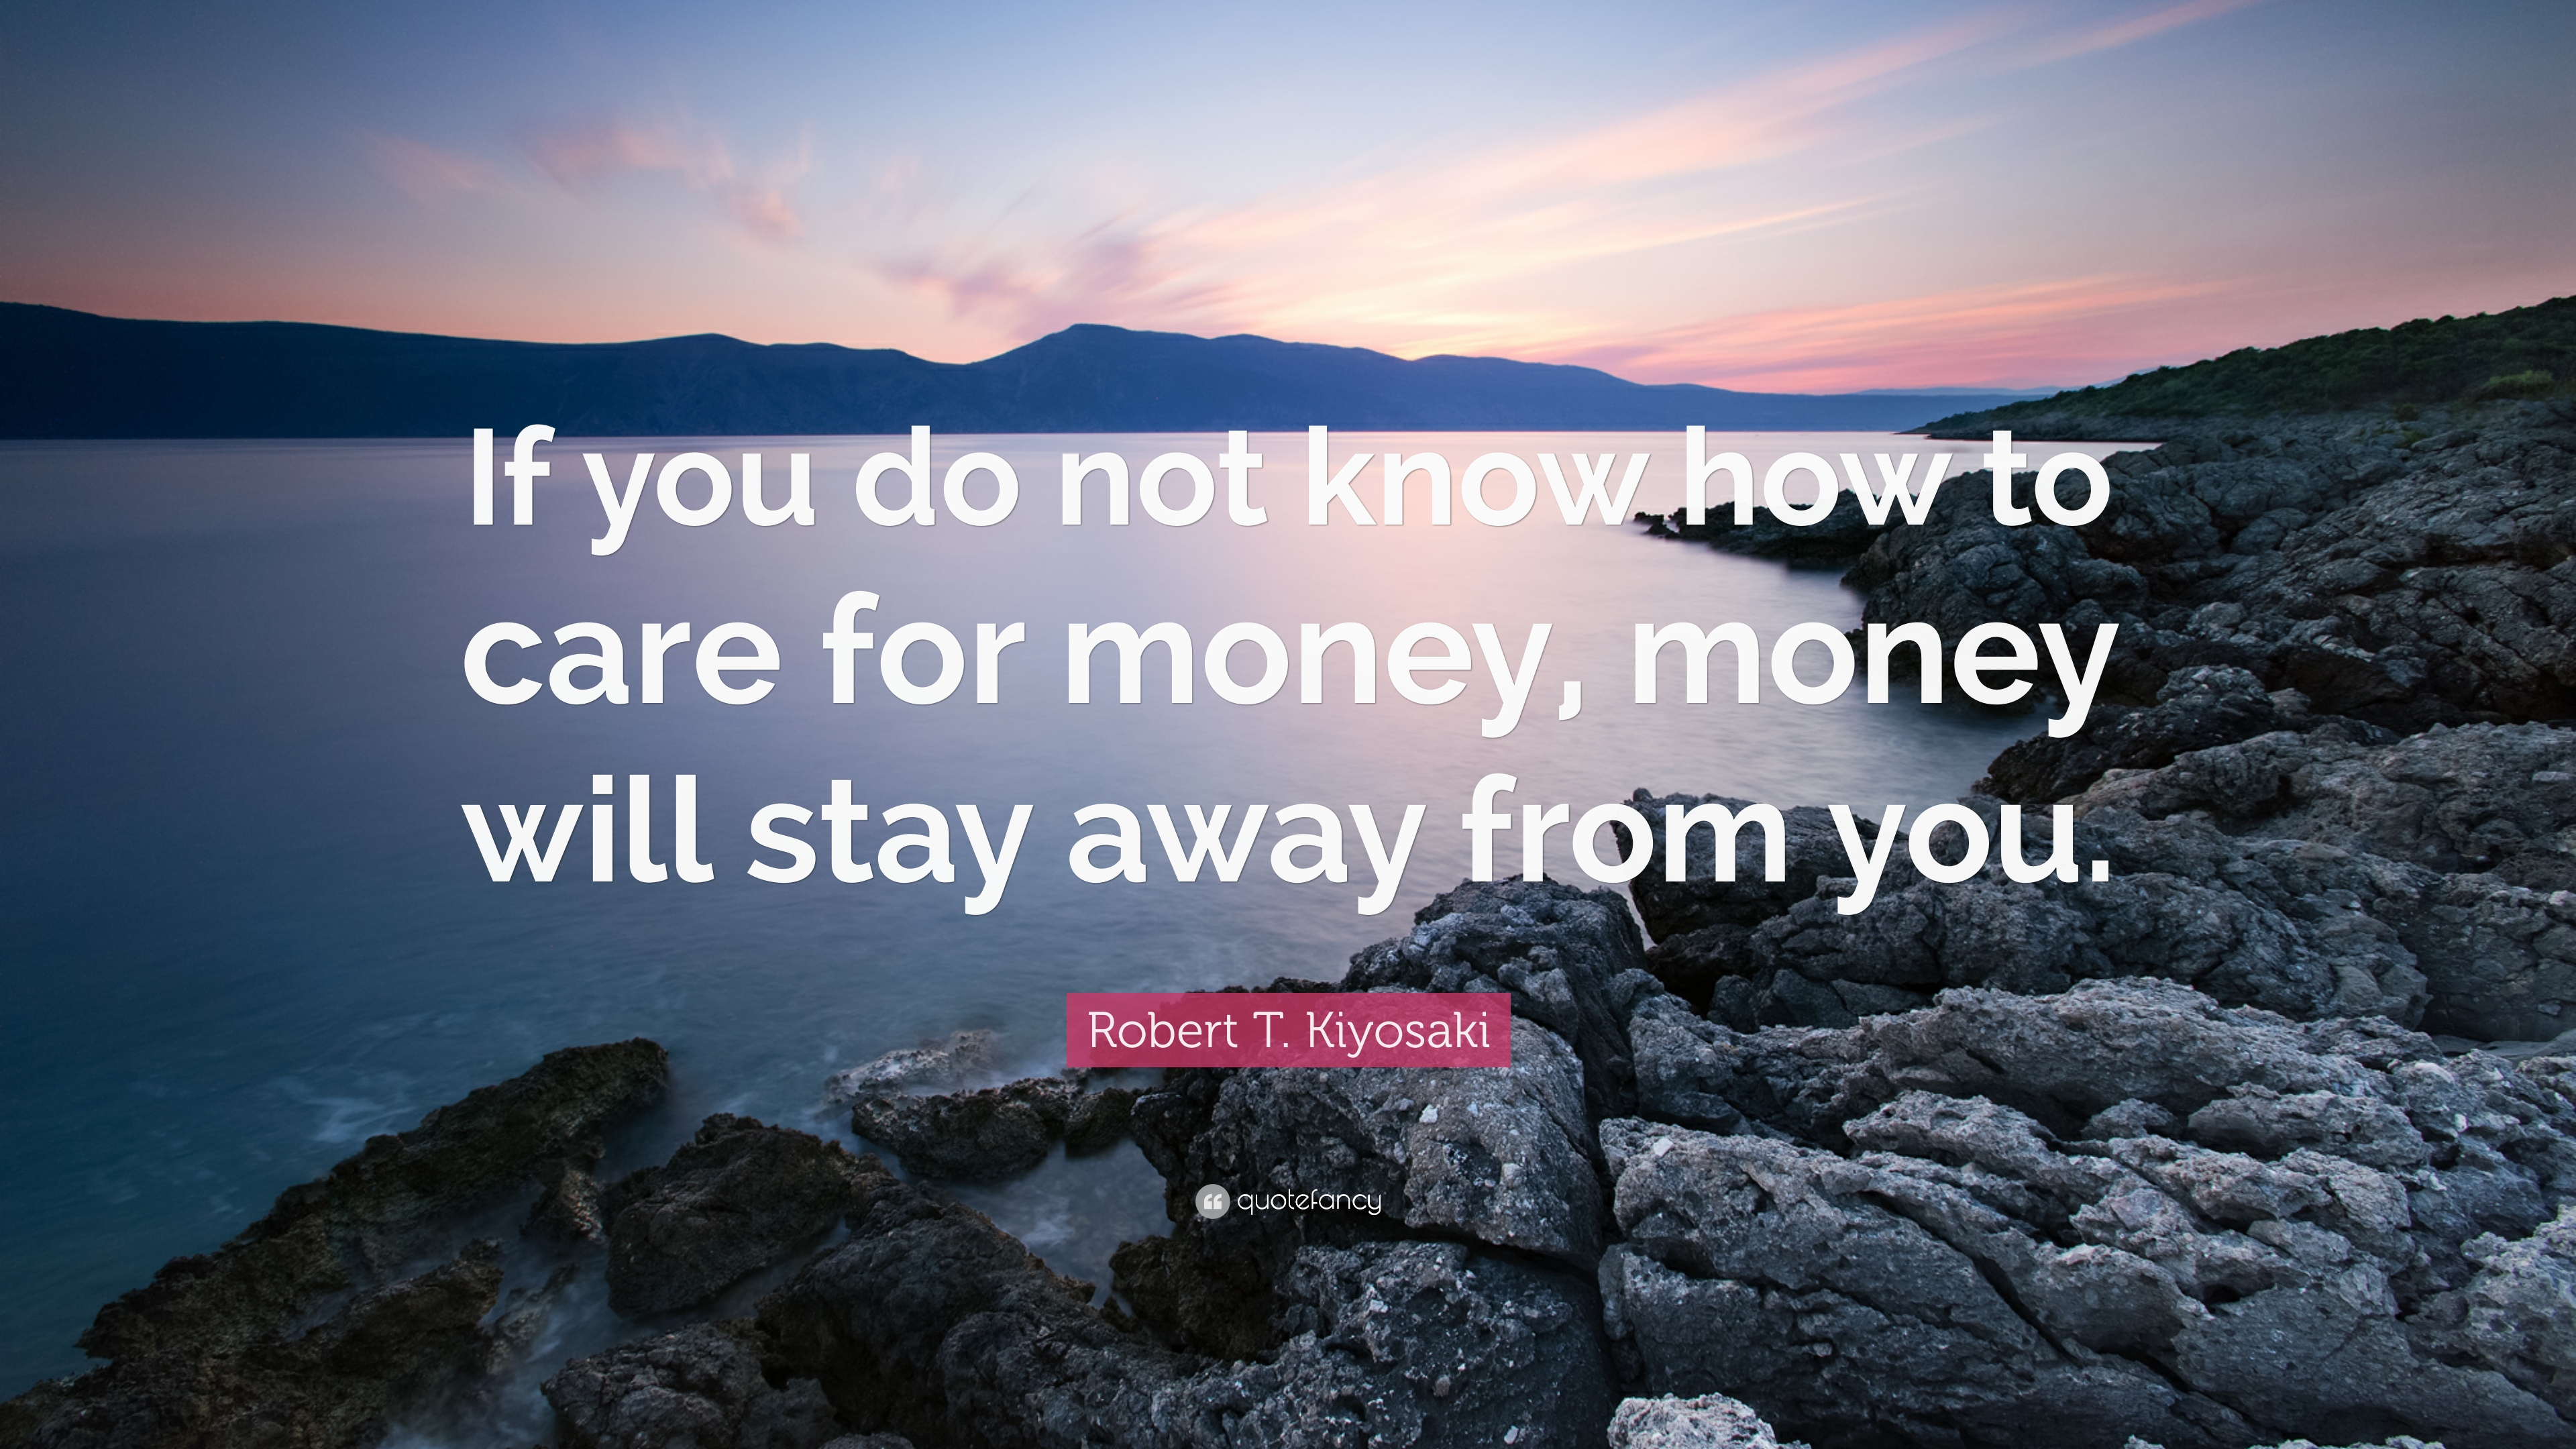 Robert T Kiyosaki Quote: '� If You Do Not Know How To Care For